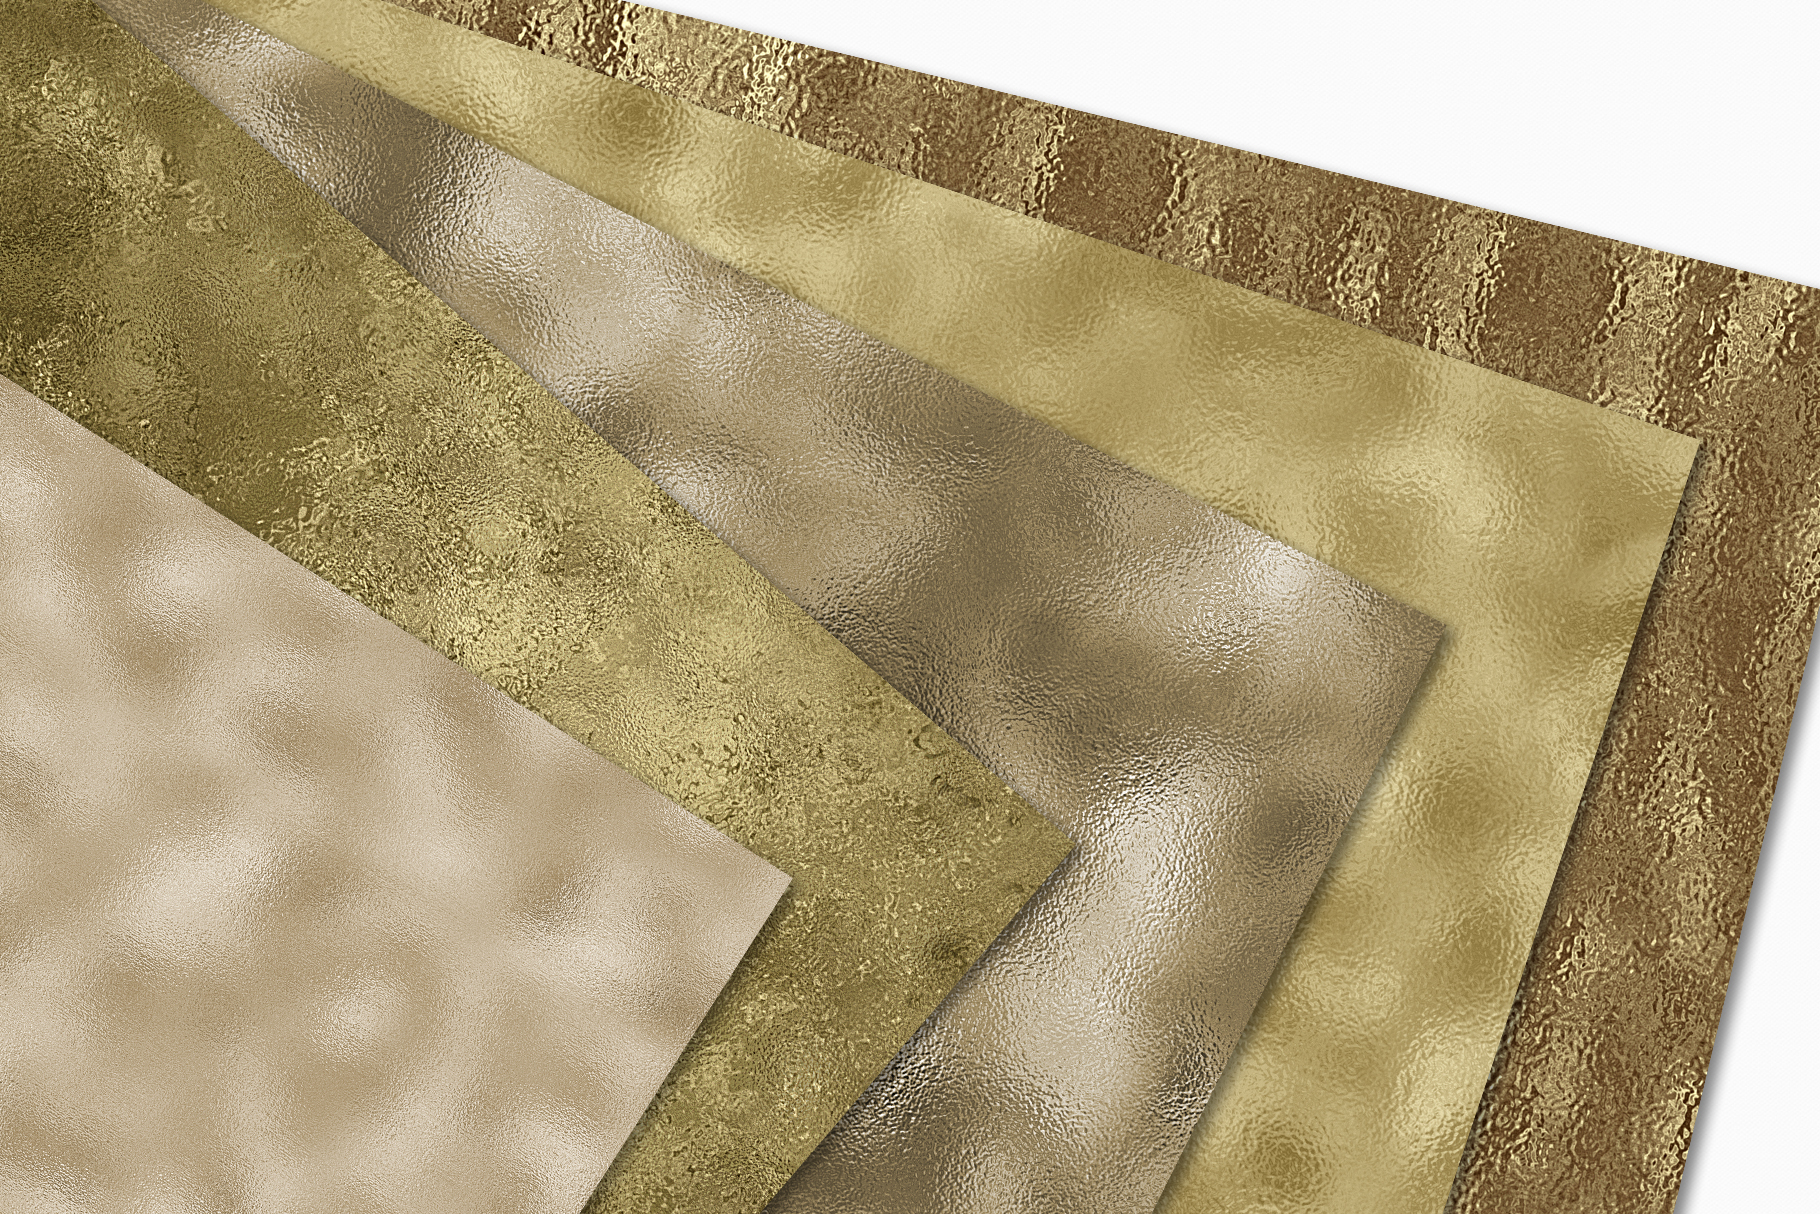 Pale Gold Foil Textures - 10 Seamless Digital Papers example image 5